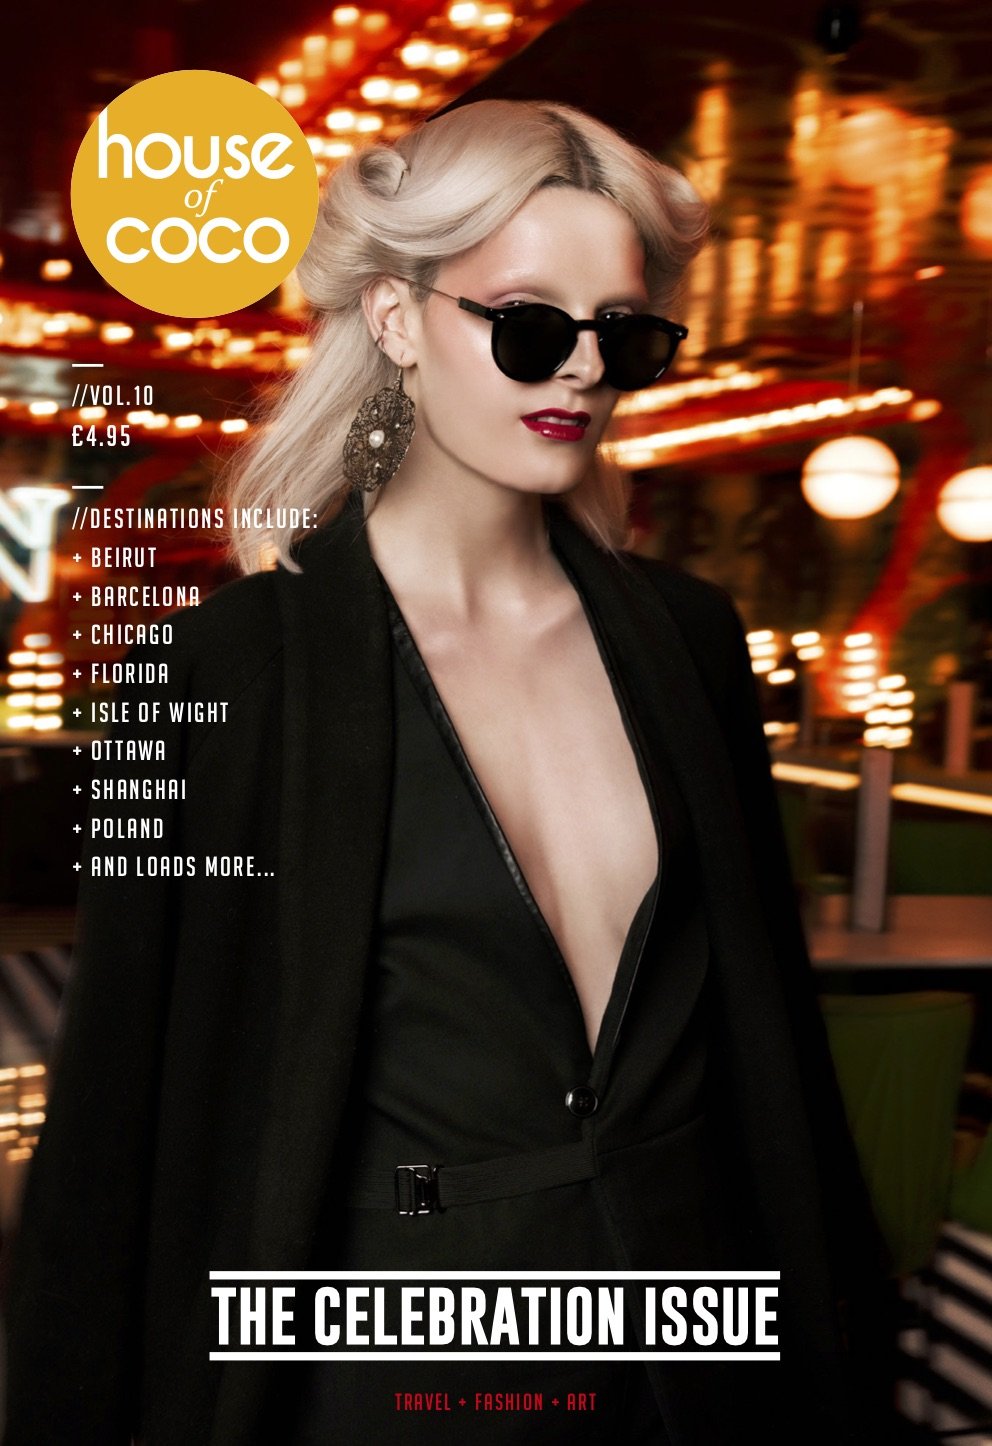 House of Coco Vol 10 Cover.jpg